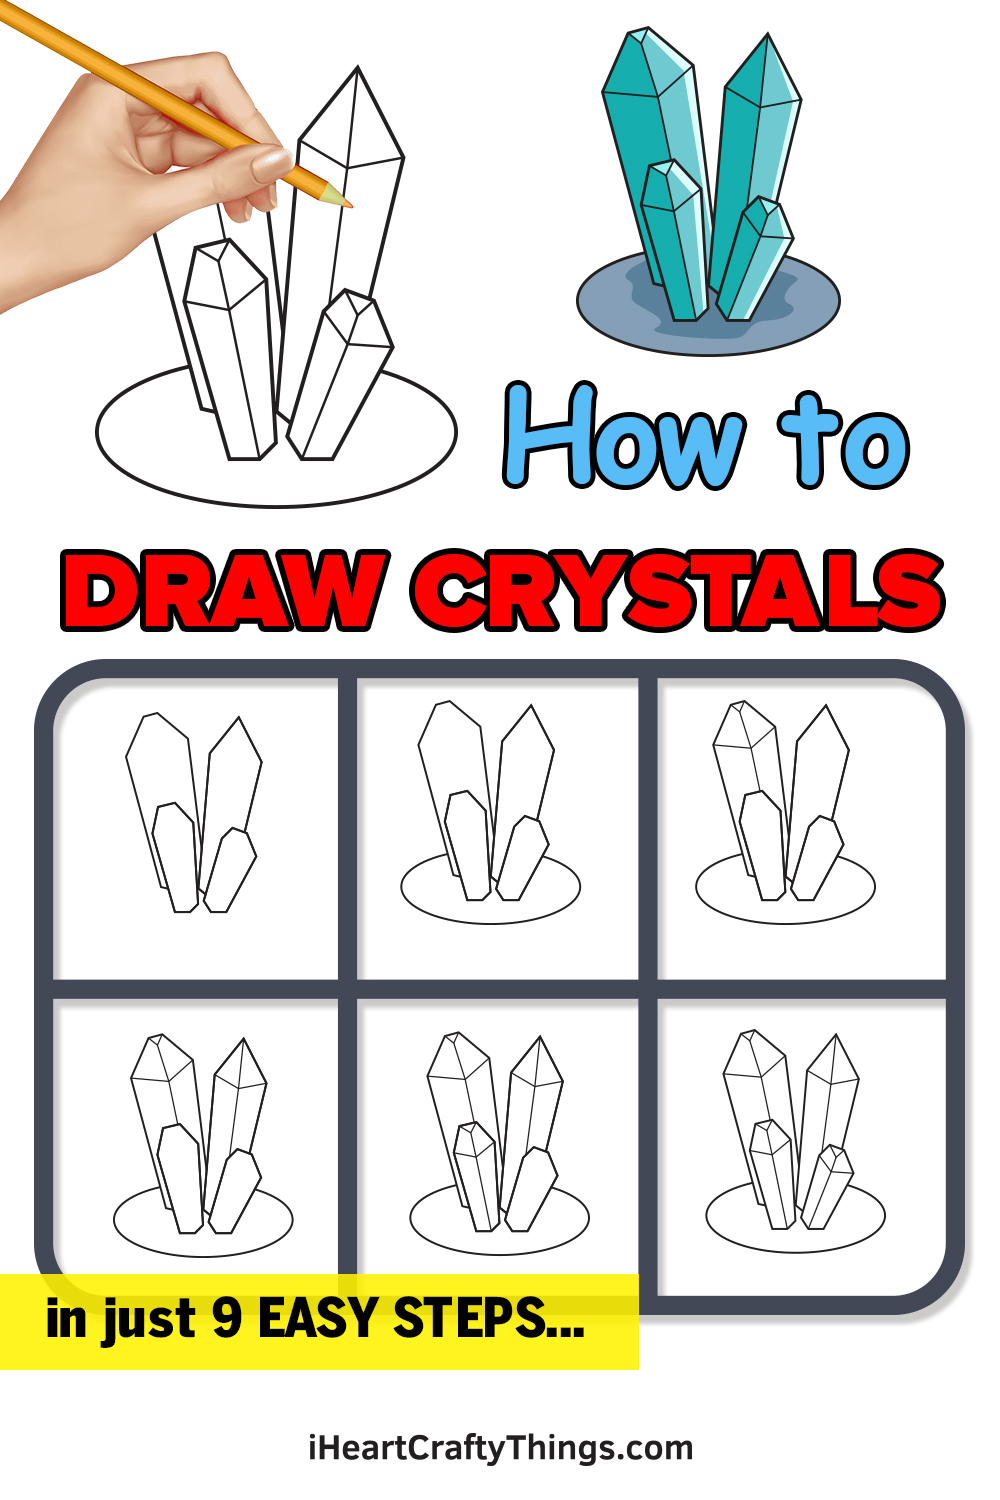 how to draw crystals in 9 easy steps